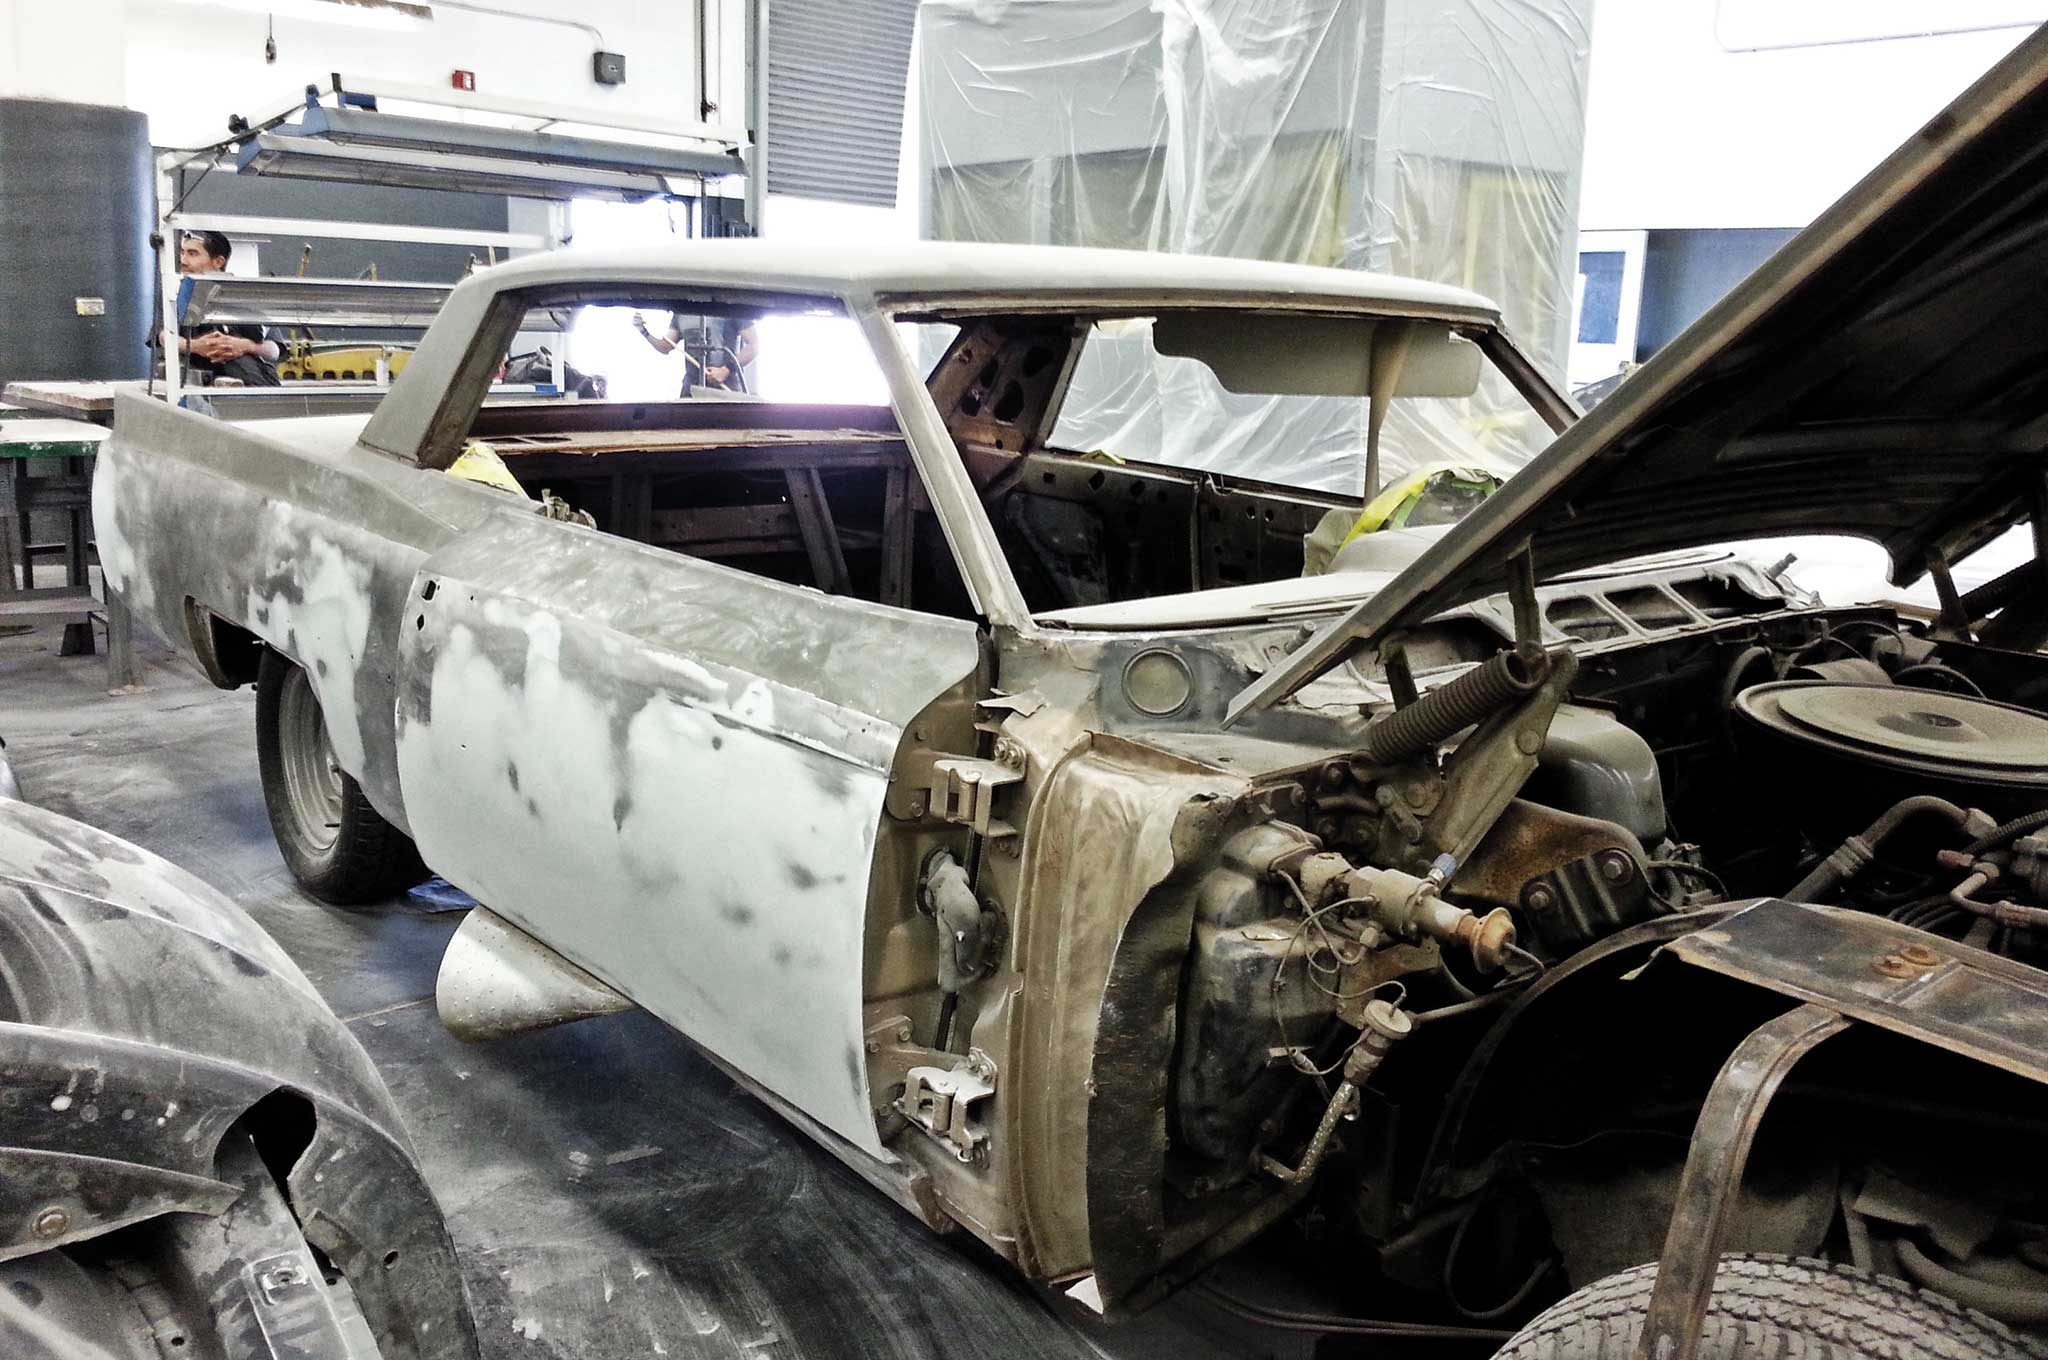 painting our 64 cadillac bare metal stripping 005